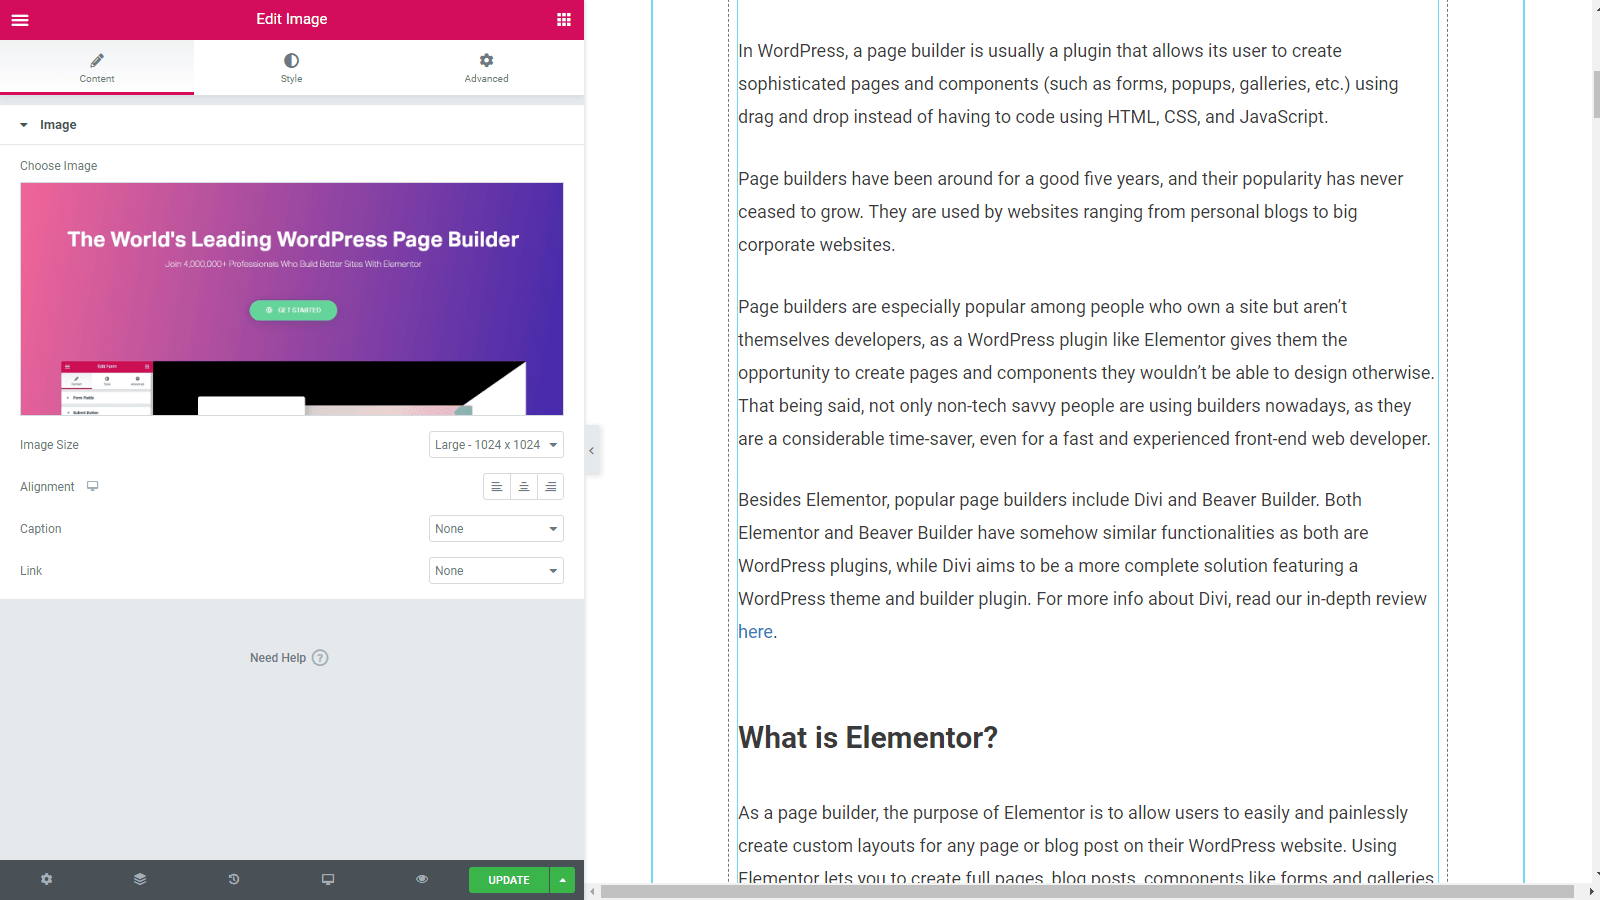 Elementor Review 2020: The Best Page Builder for WordPress? 1